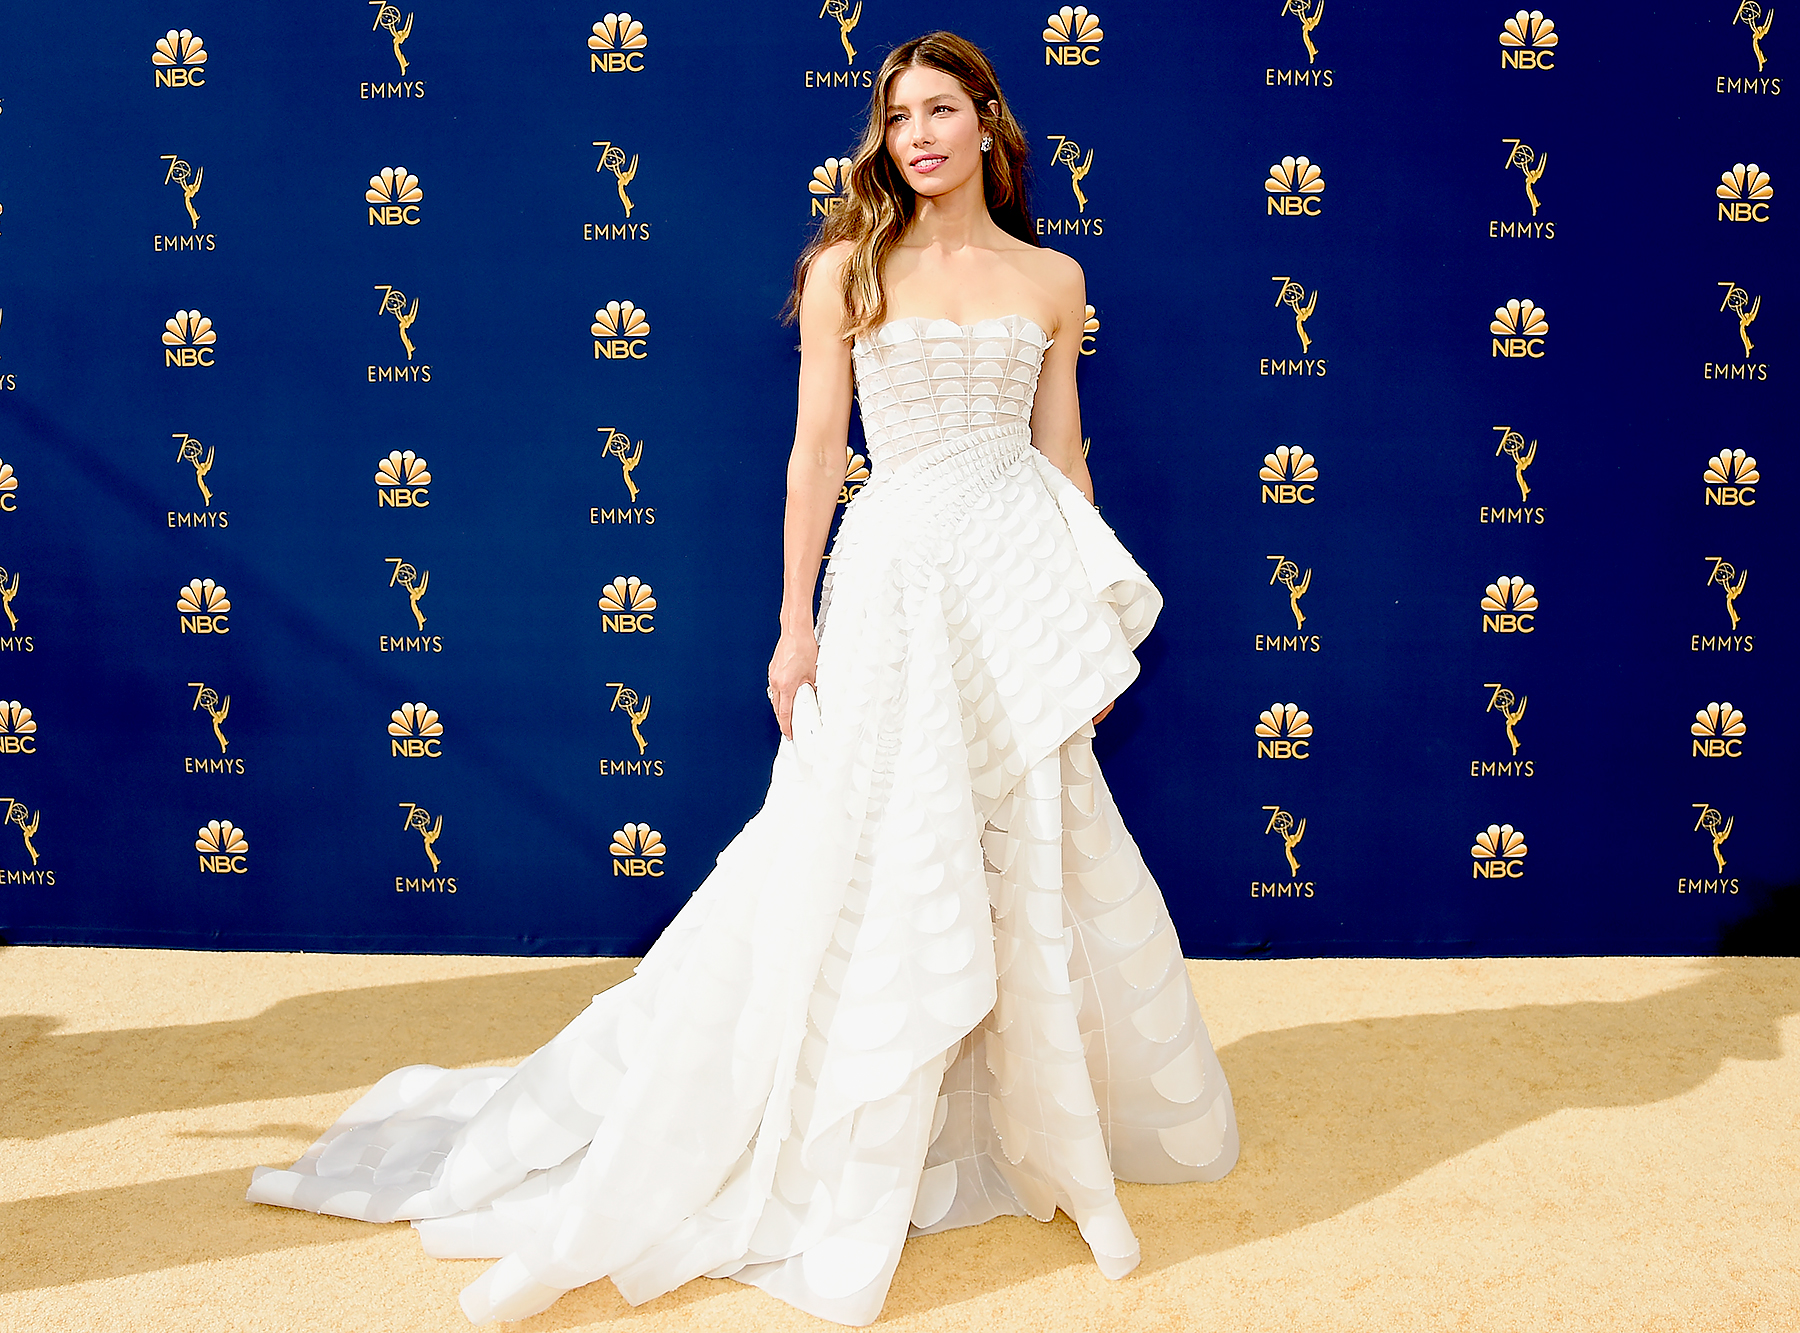 3a6e23a50f0 Emmys 2018: All the Details on Our Top Five Dresses of the Night